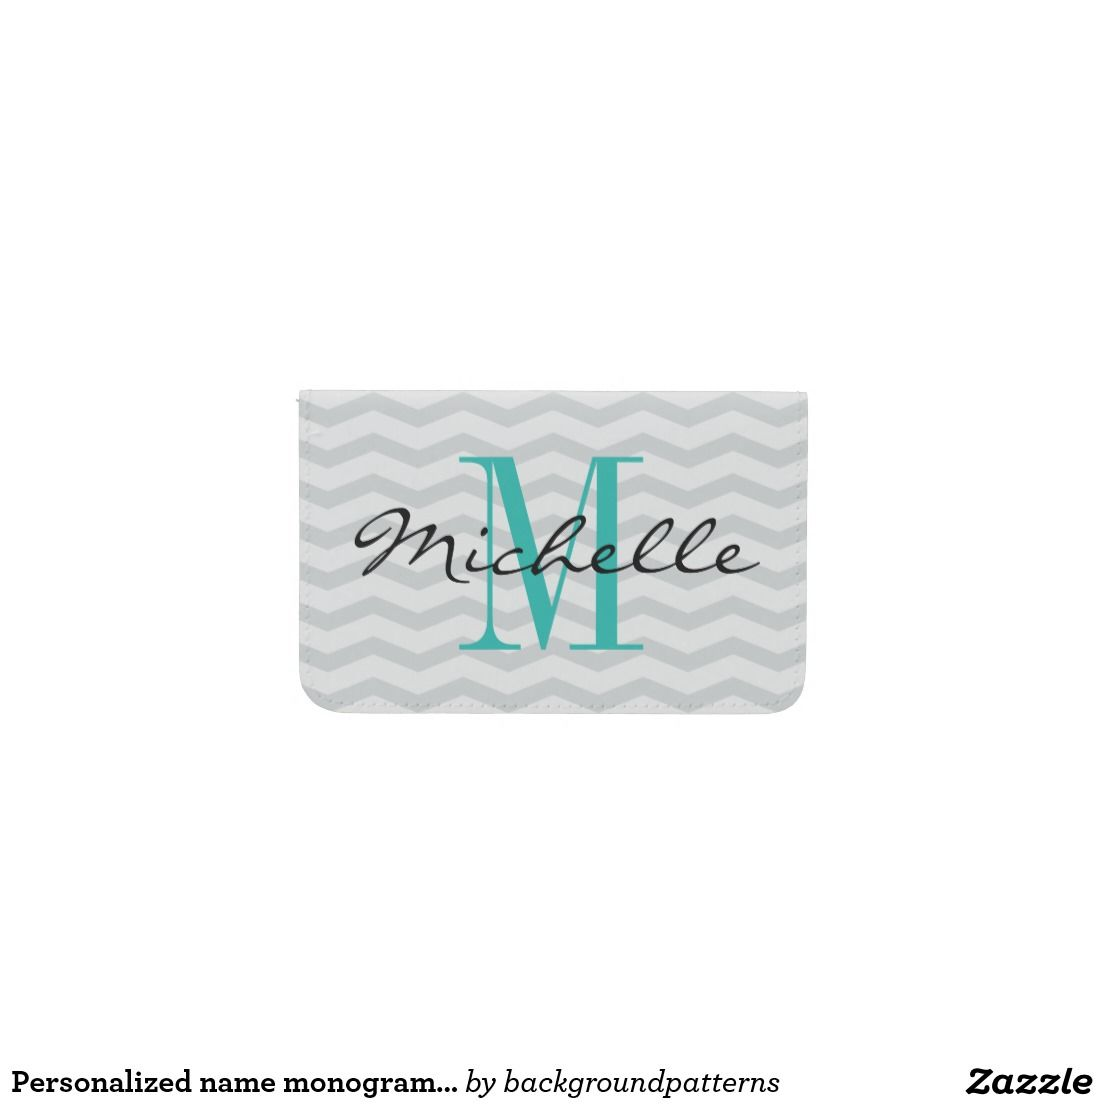 Personalized name monogram business card holder business card personalized name monogram business card holder magicingreecefo Images